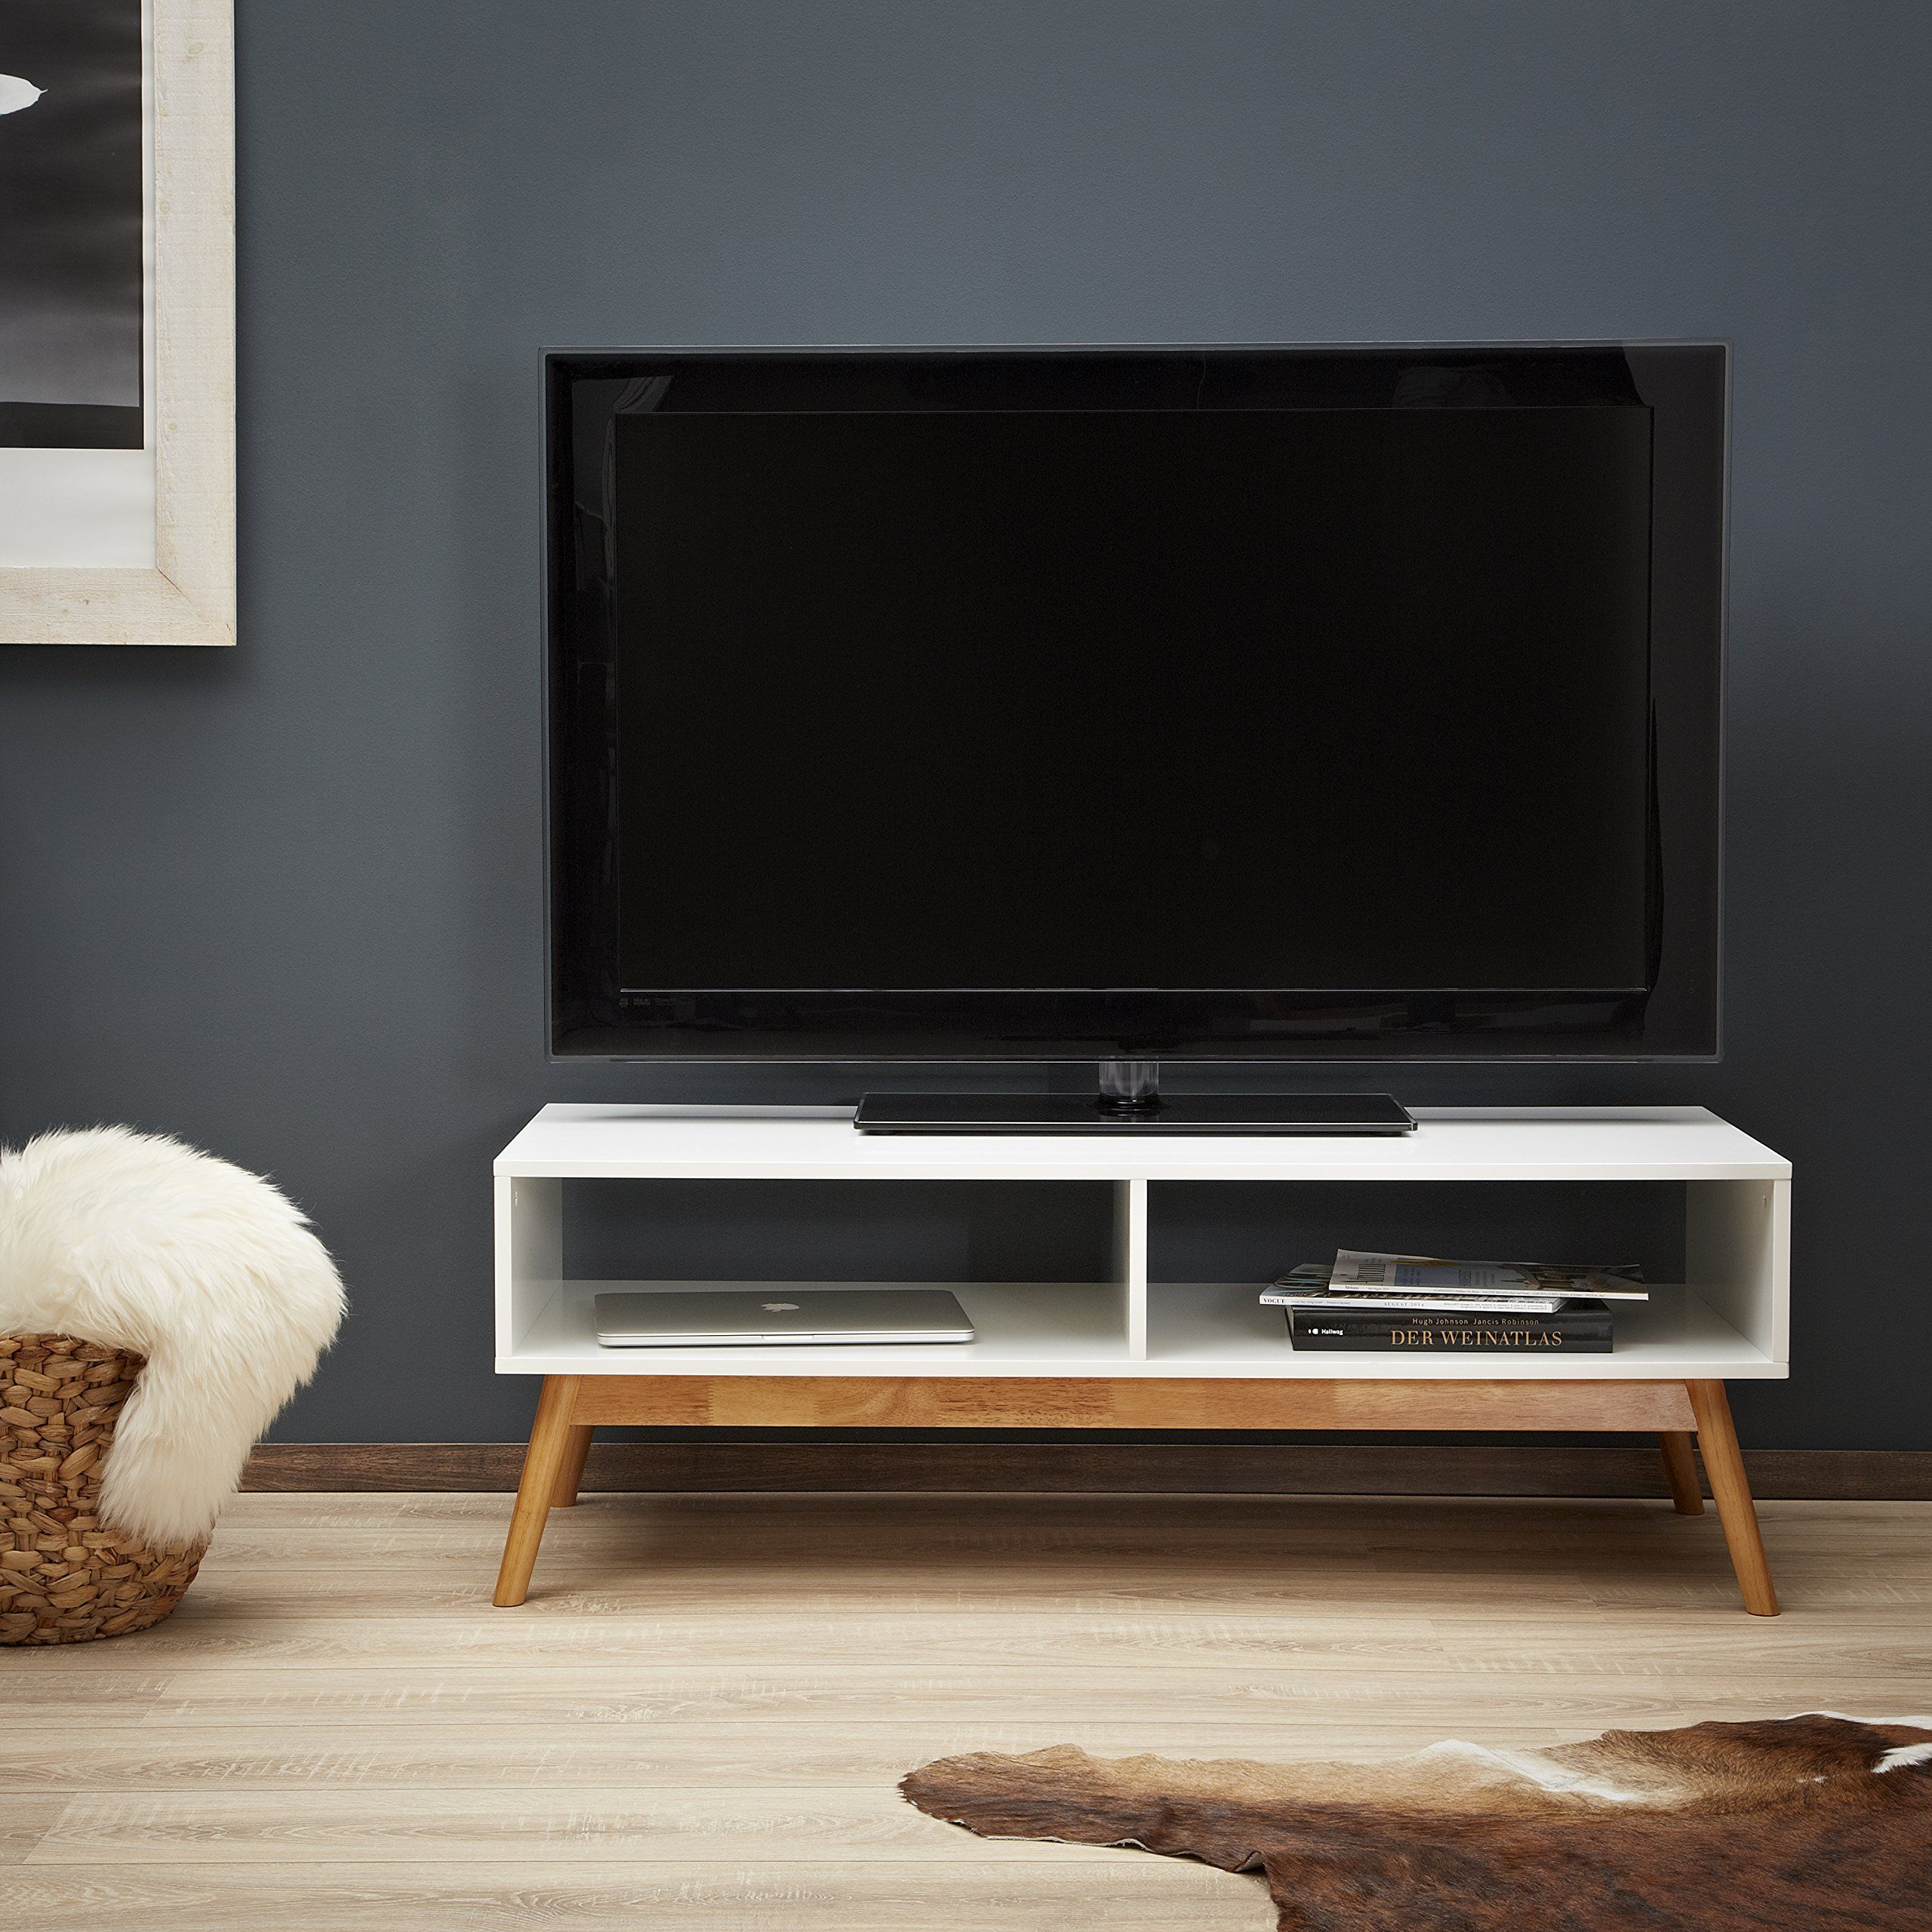 Lomos tv lowboard made of wood in white with two drawers with a modern scandinavian Swedish home furniture amazon